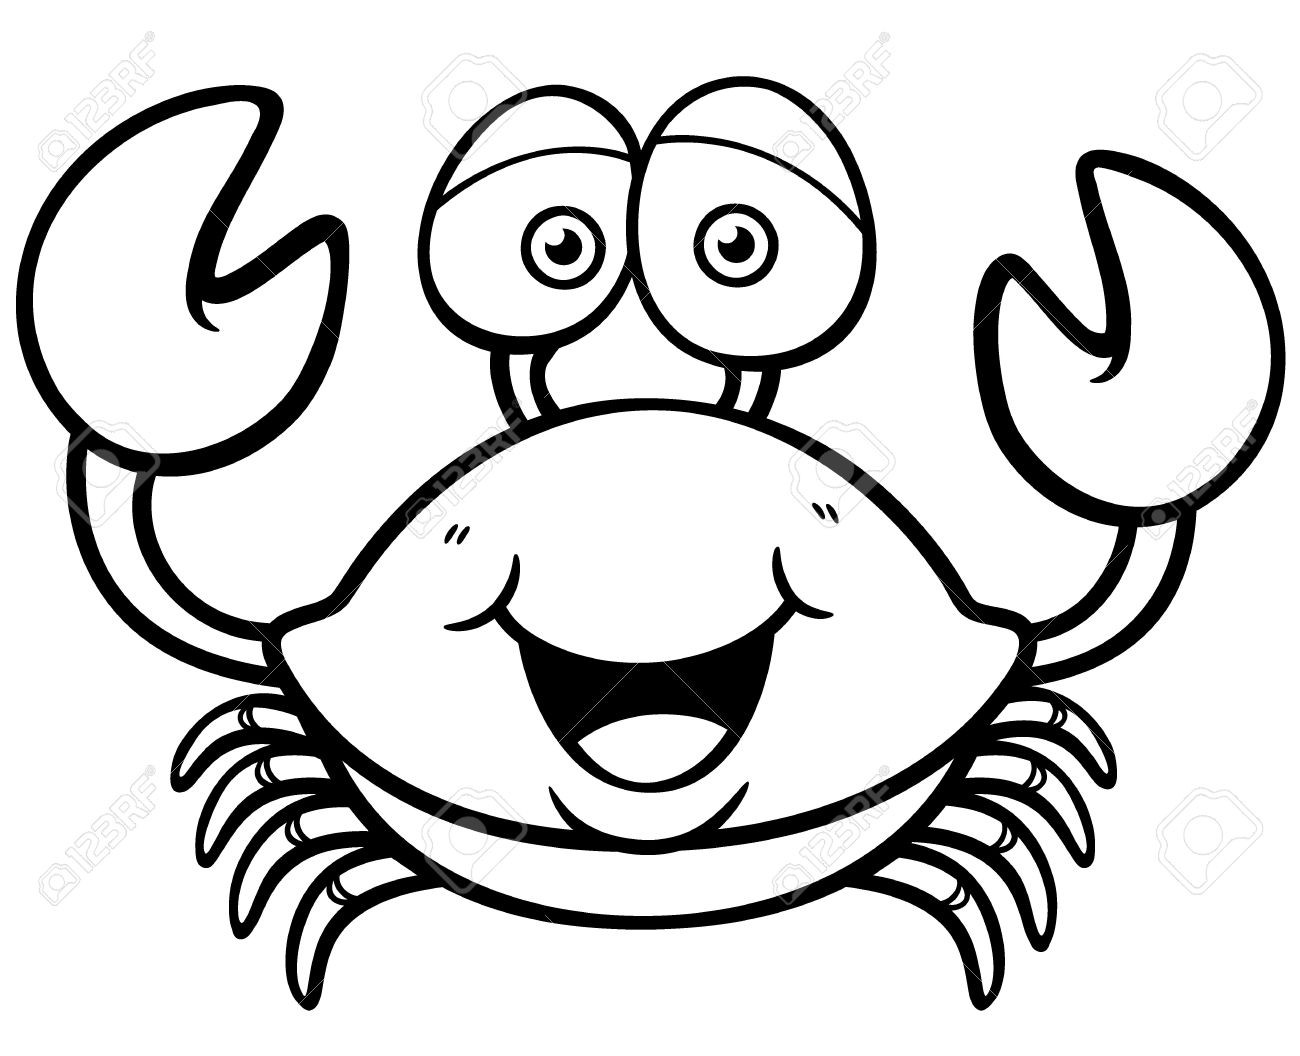 cute crab coloring pages hermit crab coloring pages printable enjoy coloring coloring cute crab pages